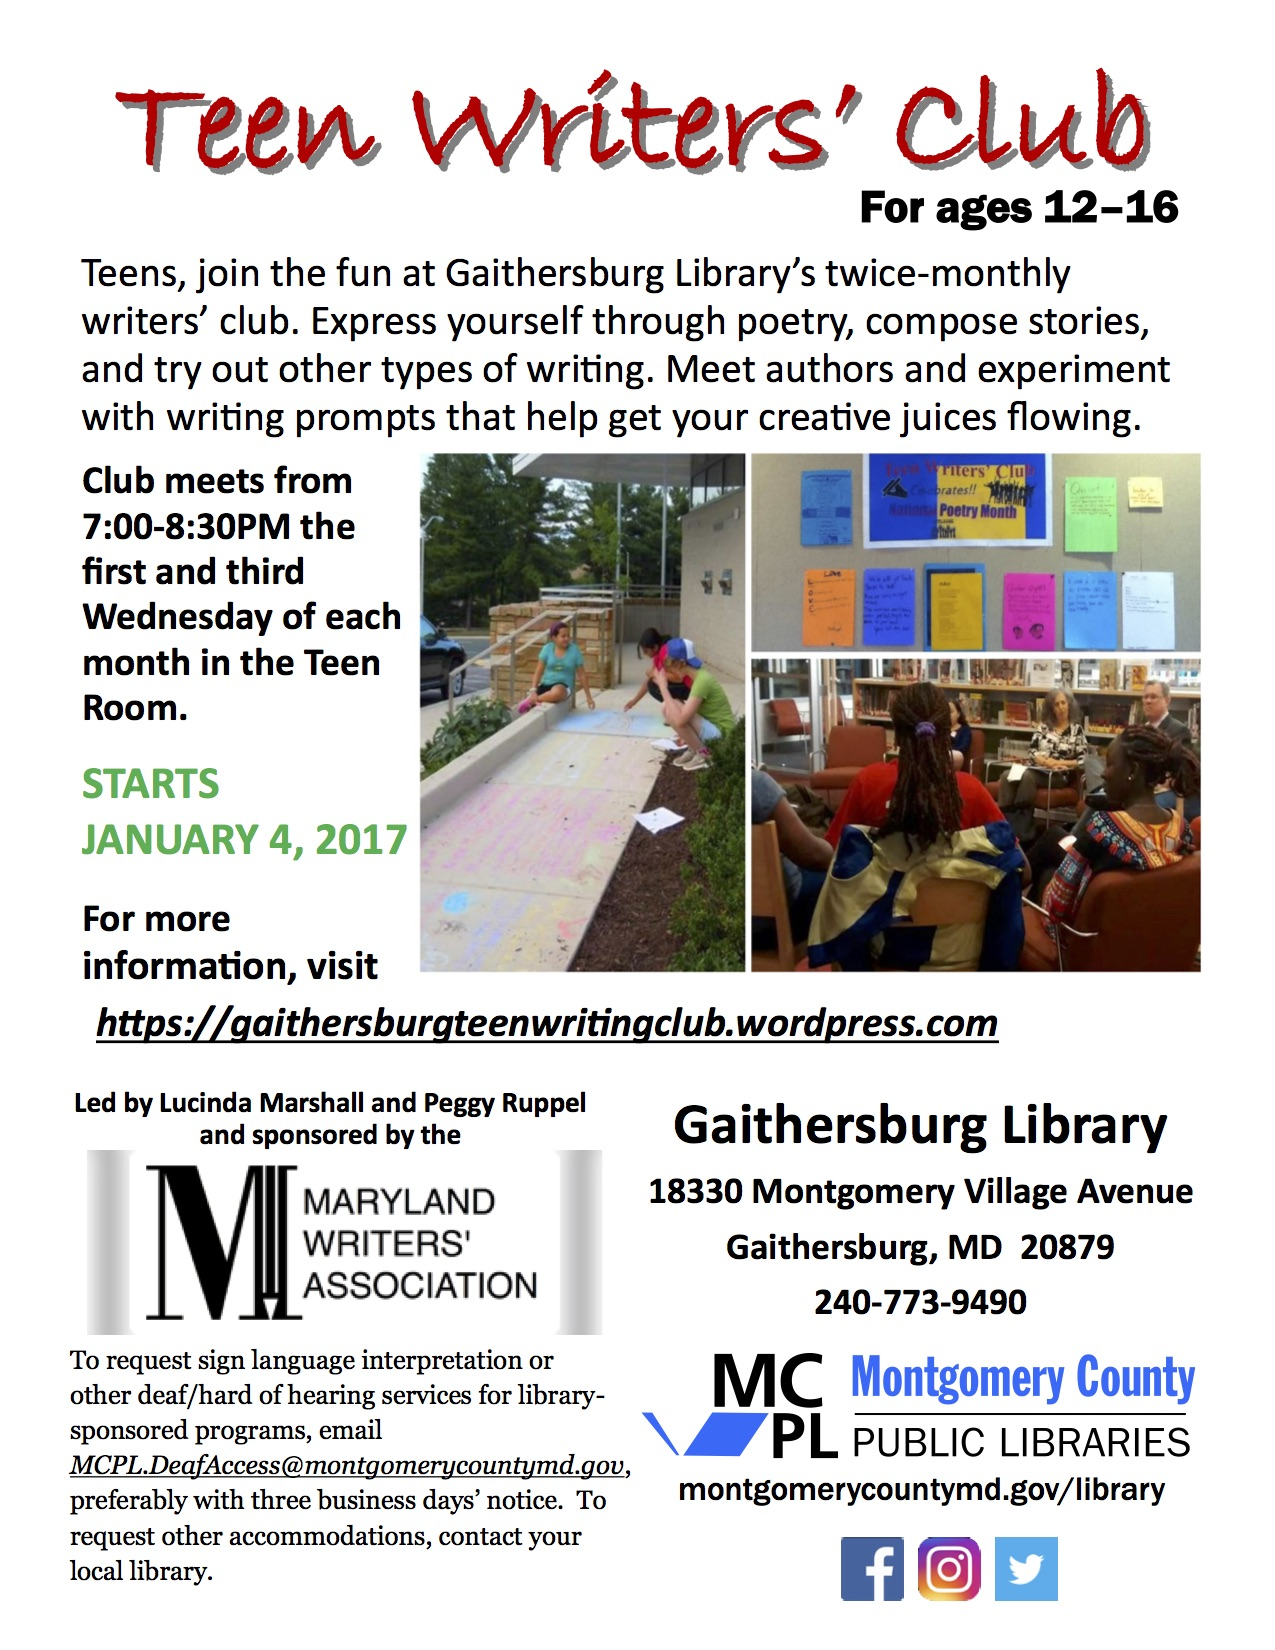 creative writing club flyer : dr bylenok, who is a creative writing professor, will be  writing  center workshops (endorsed by the elc club): writing-center-flyer-f16.